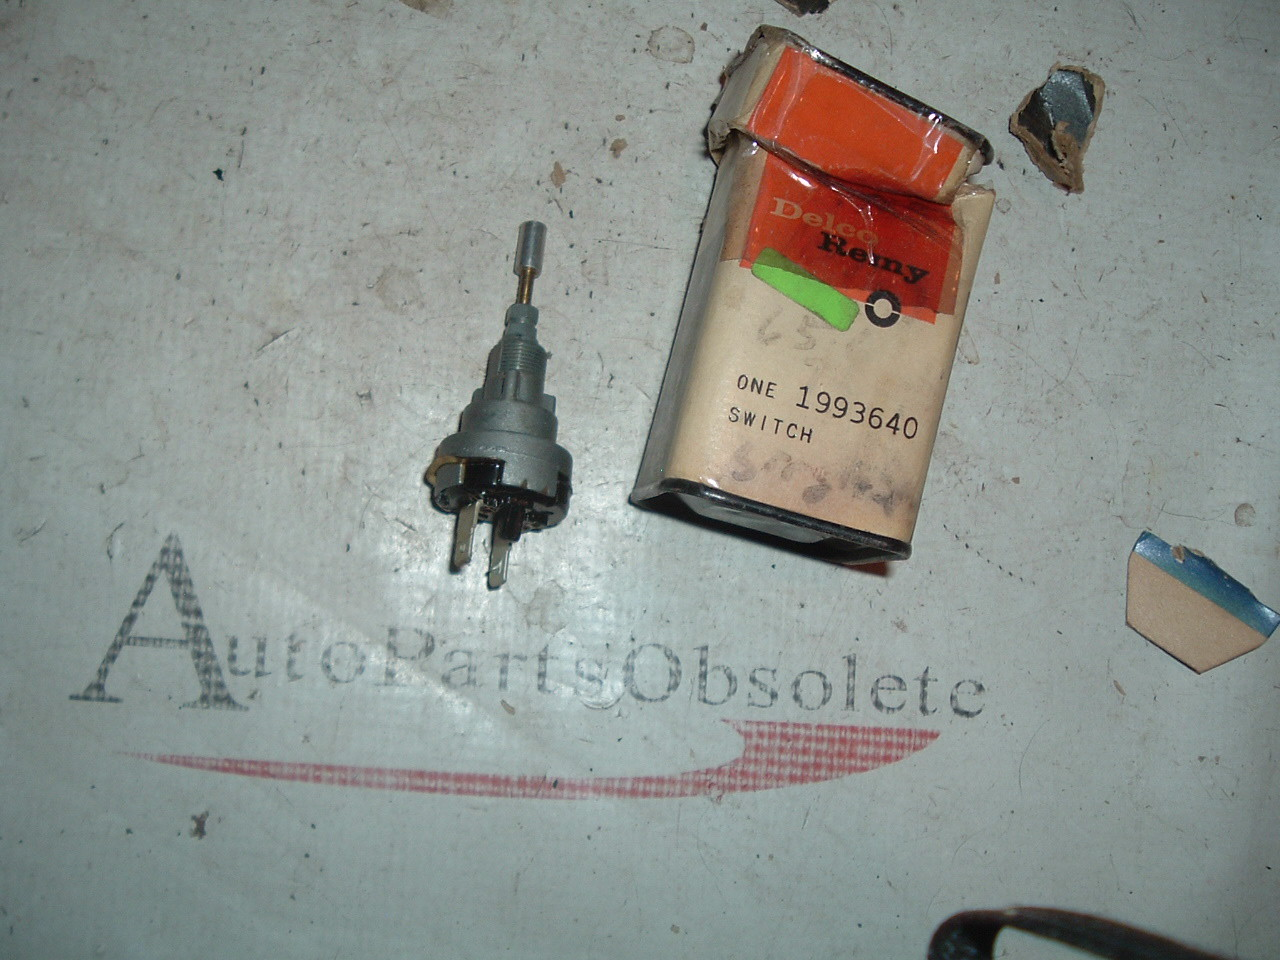 1964 1965 Chevrolet truck 1 speed windshield wiper switch with washer GM # 1993640 (z 1993640)